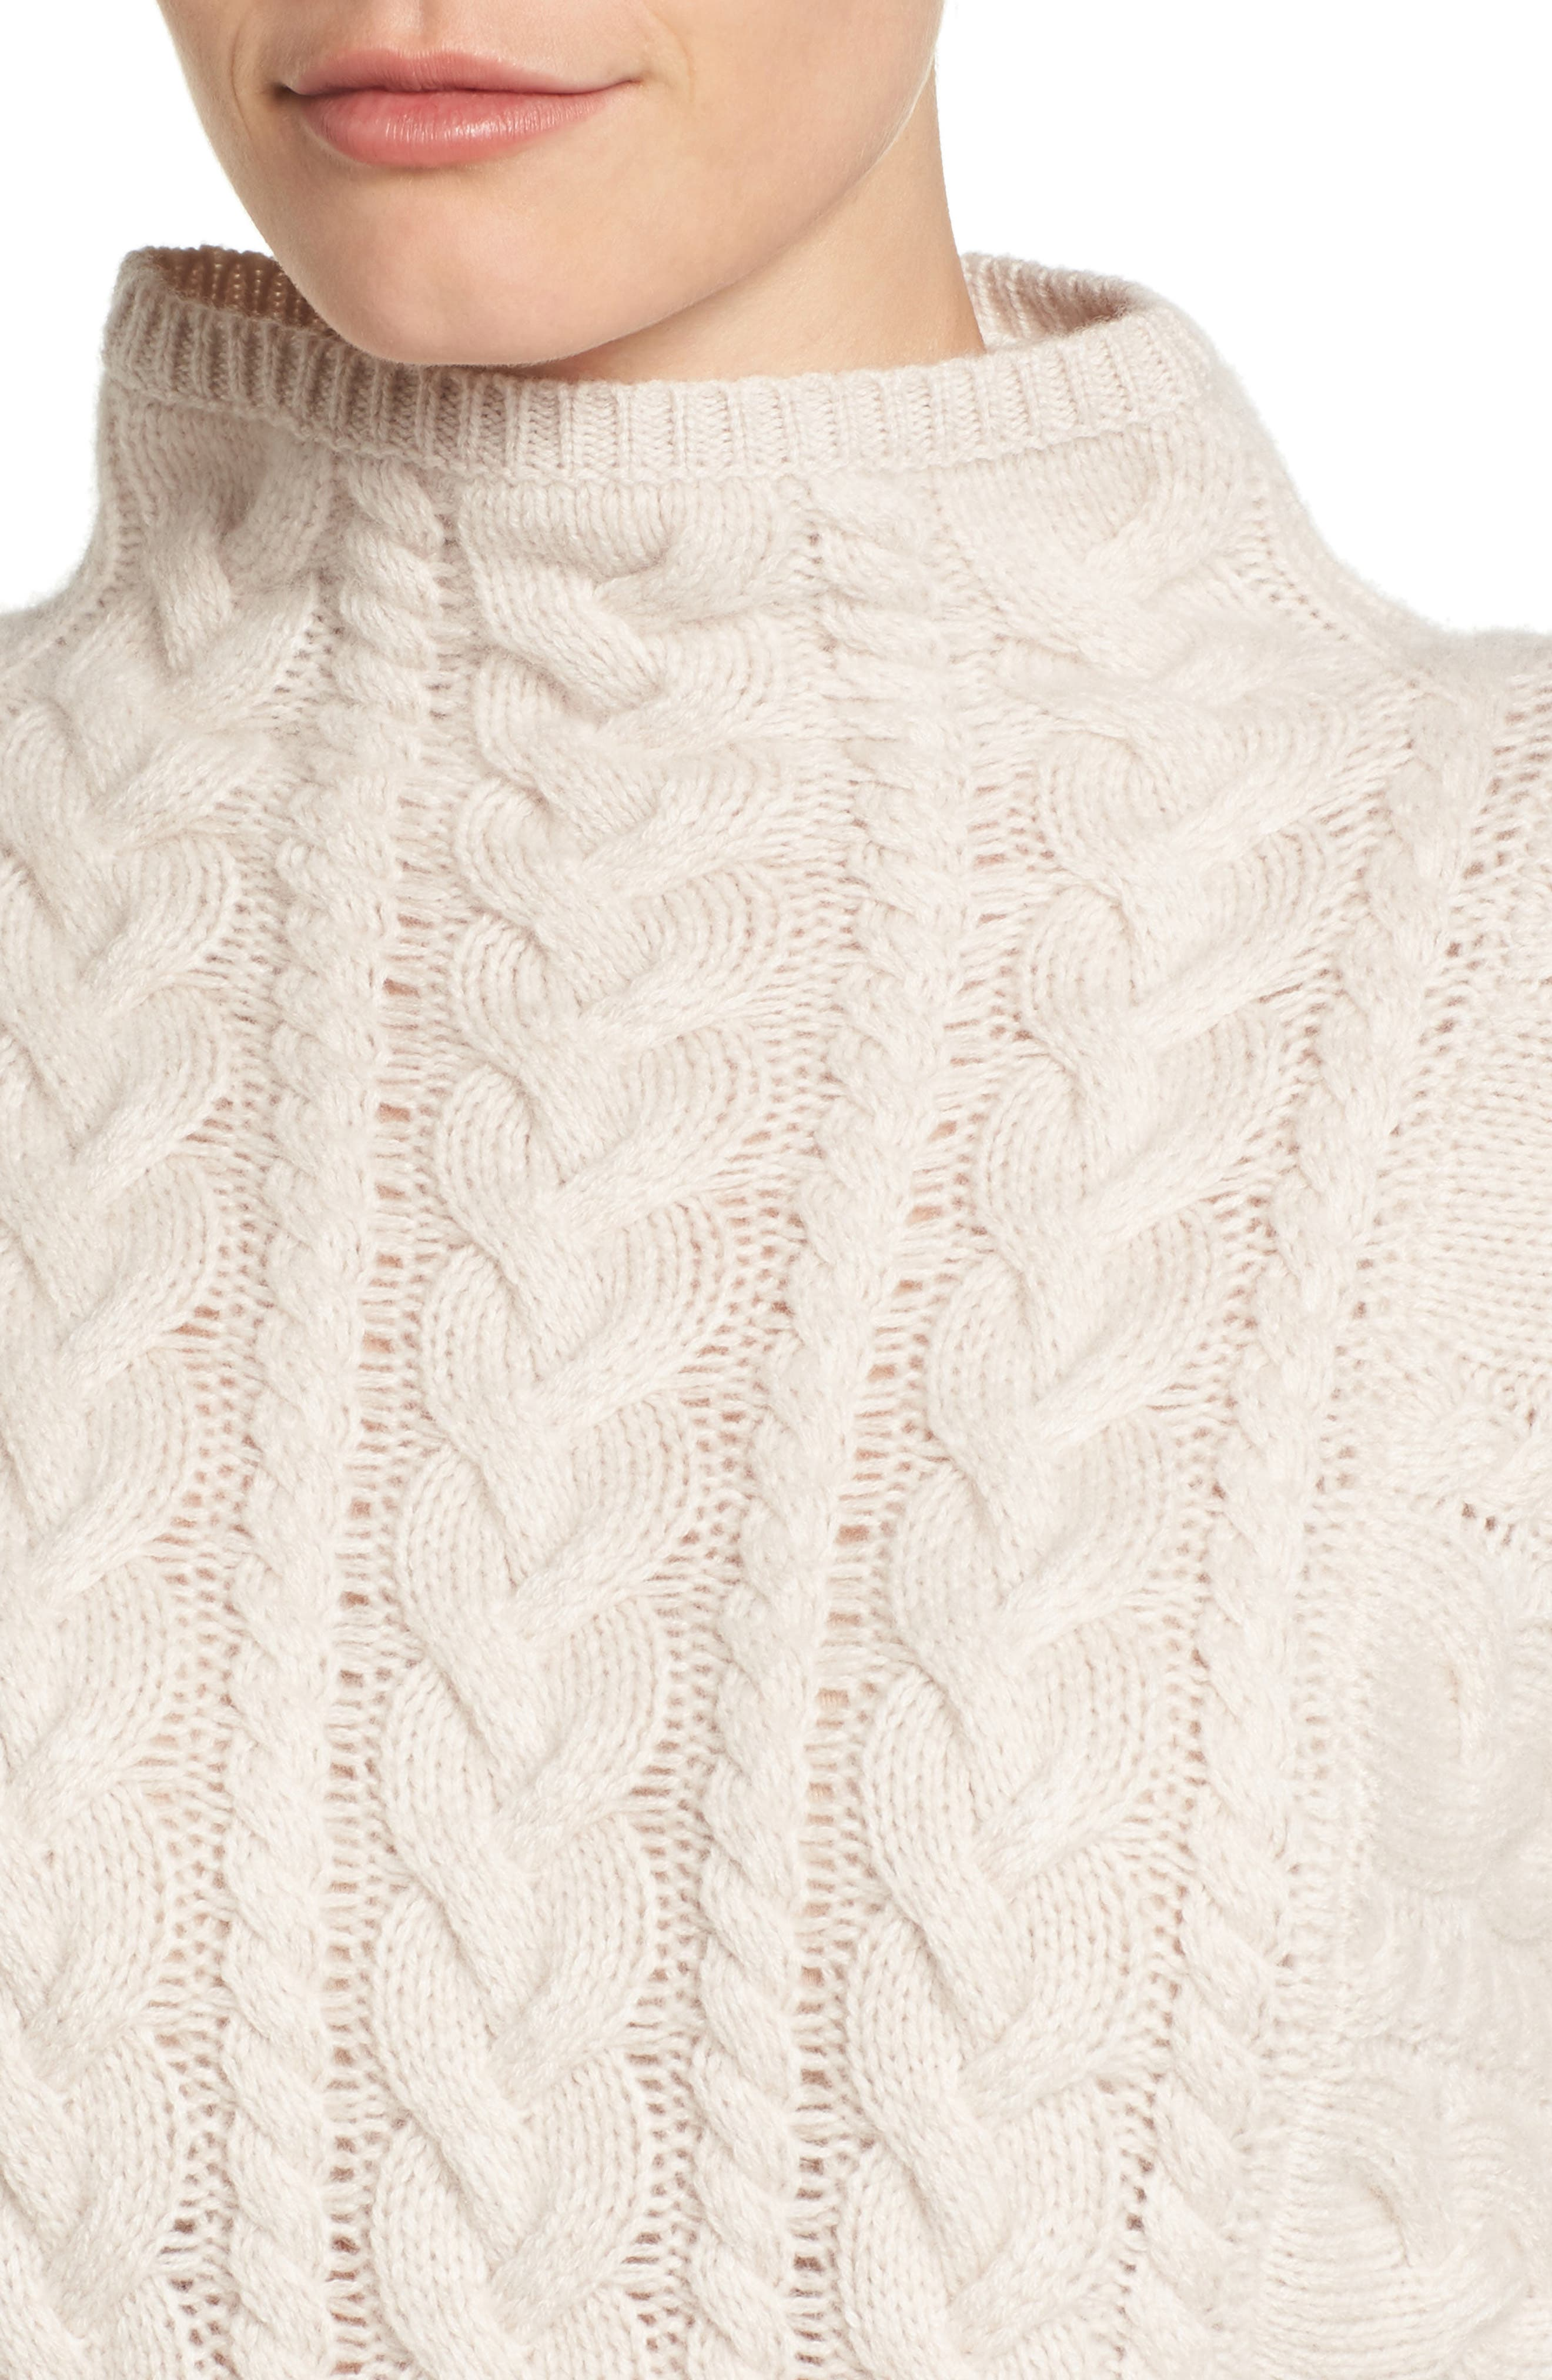 Cashmere Cable Sweater,                             Alternate thumbnail 4, color,                             Beige Pumice Heather